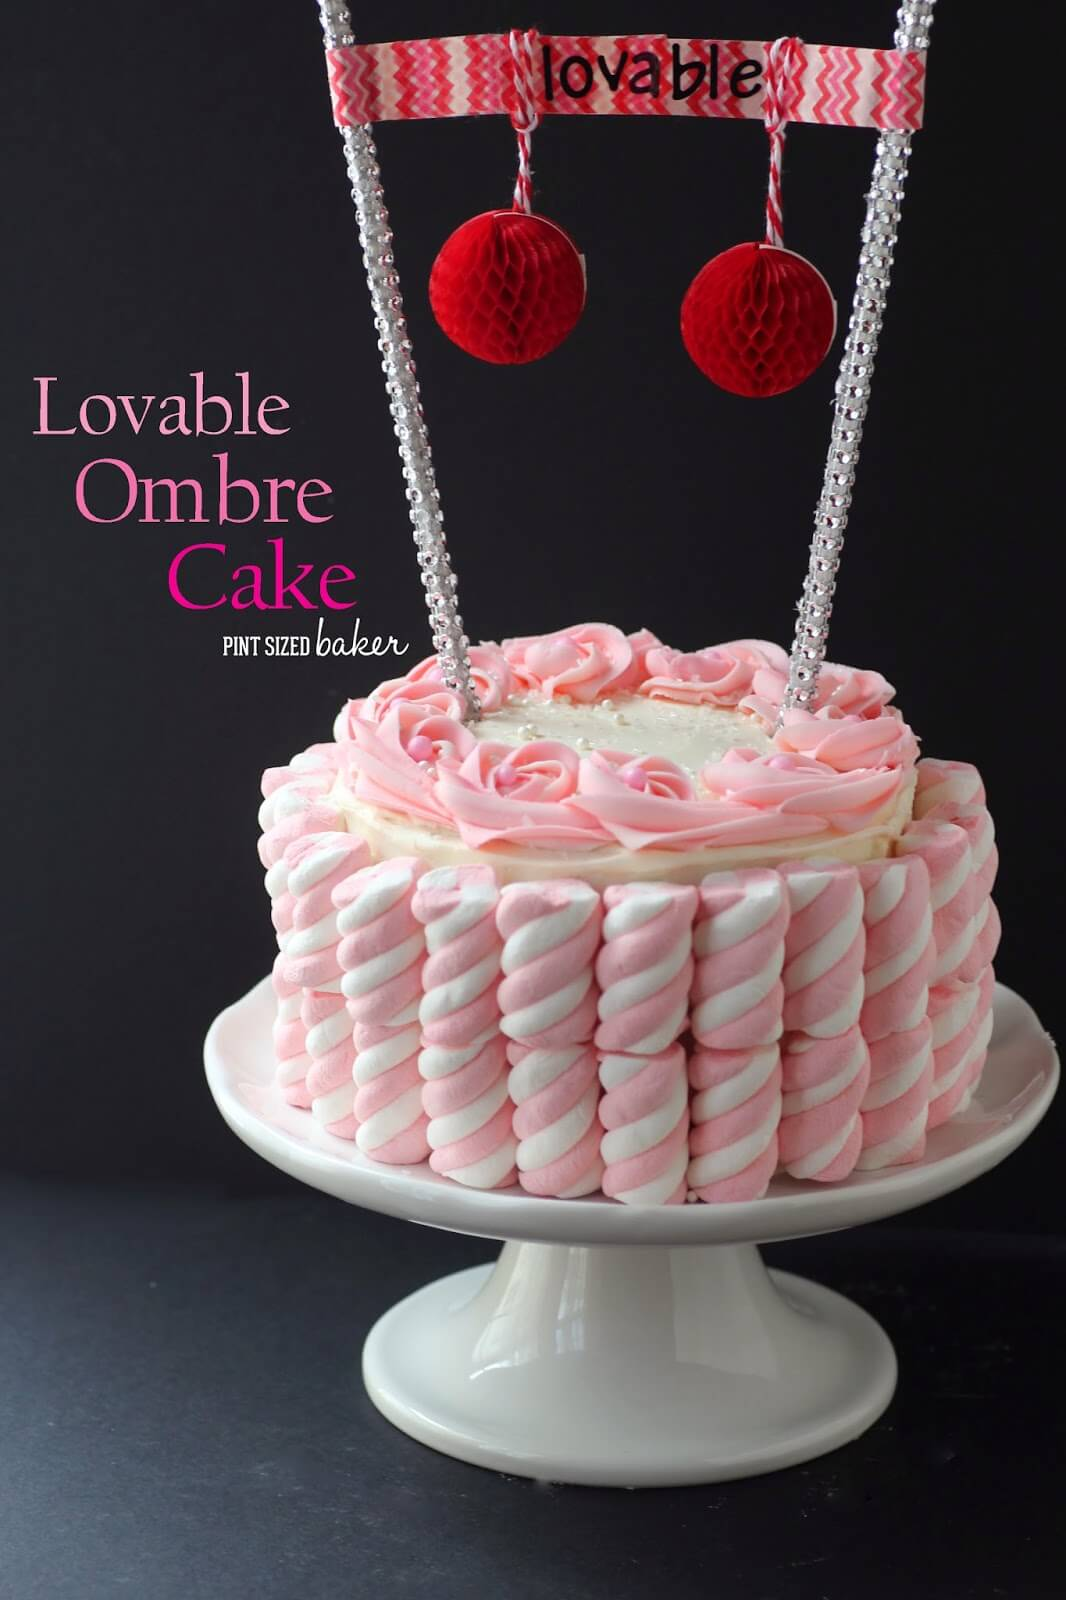 Lovable Ombre Cake